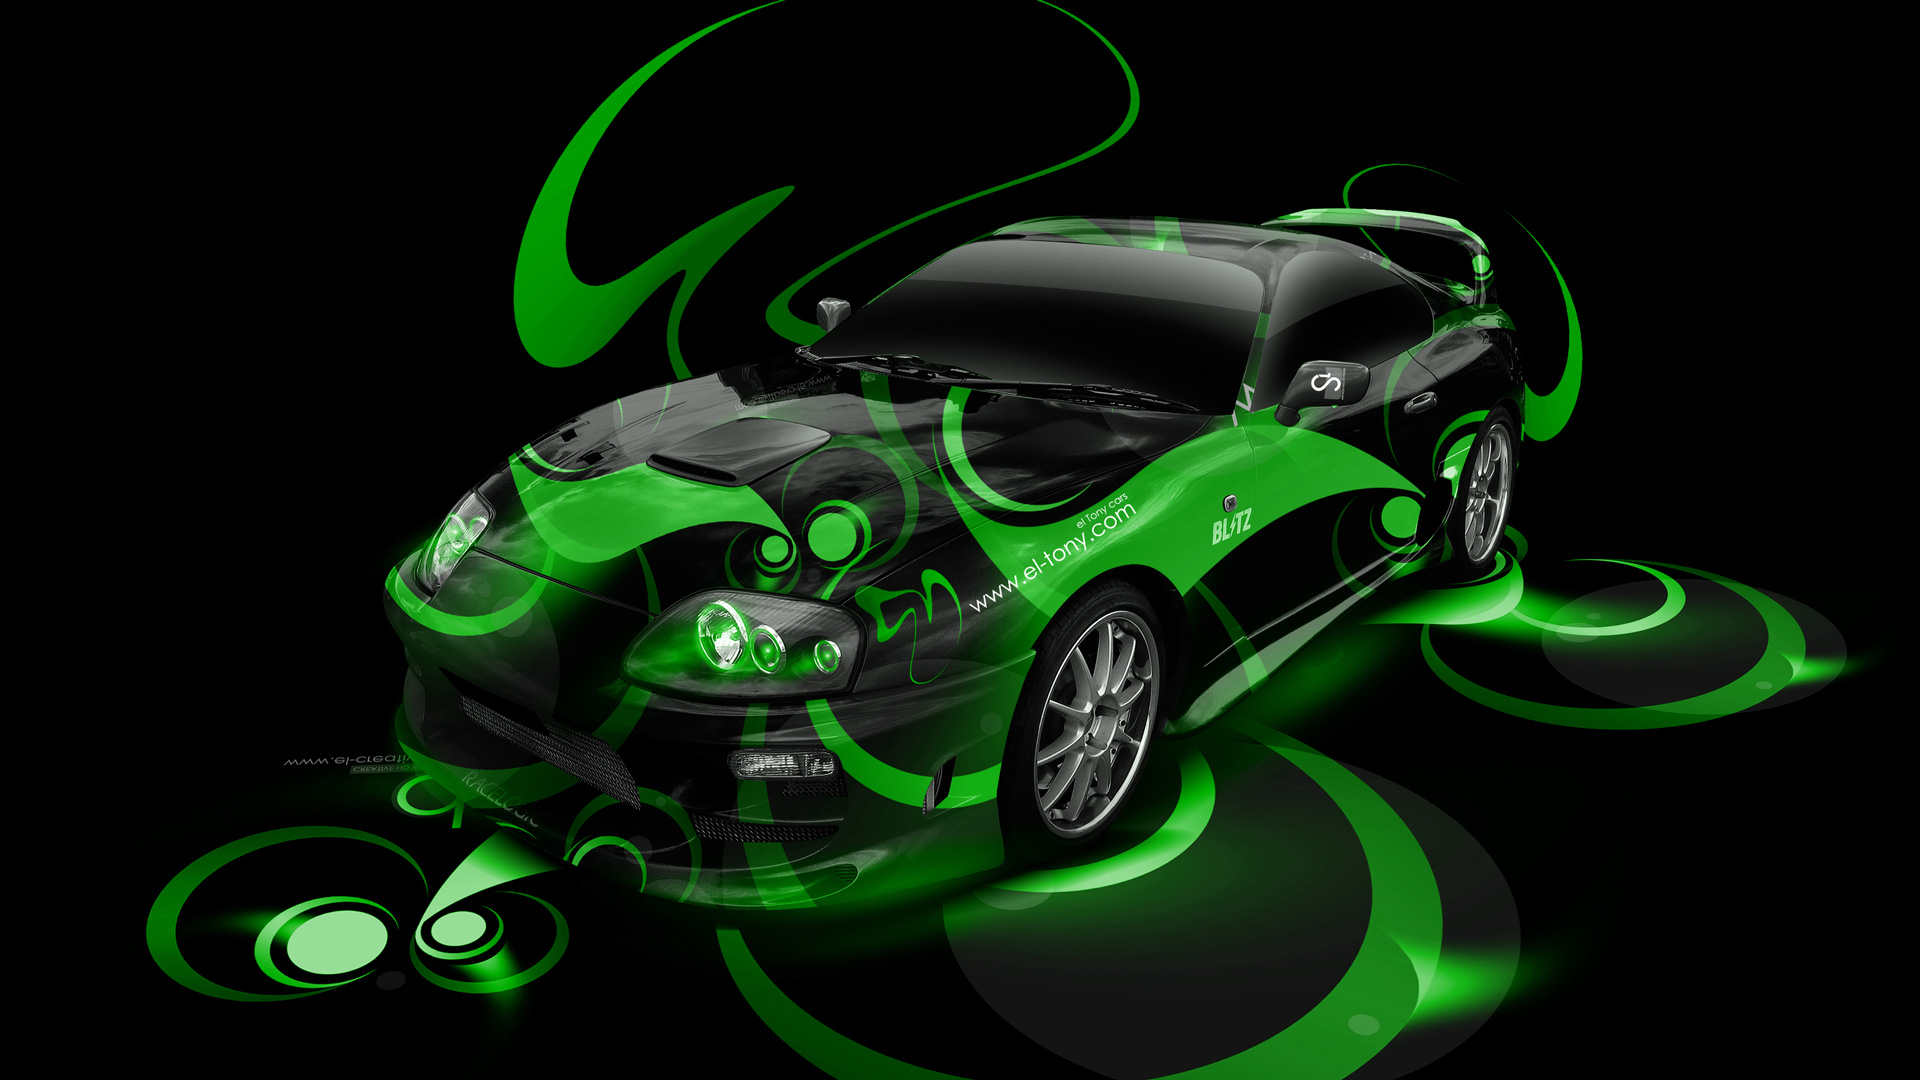 Suzuki Recursion Side Super Plastic Bike 2014 · Toyota Supra JDM Super  Abstract Car 2014